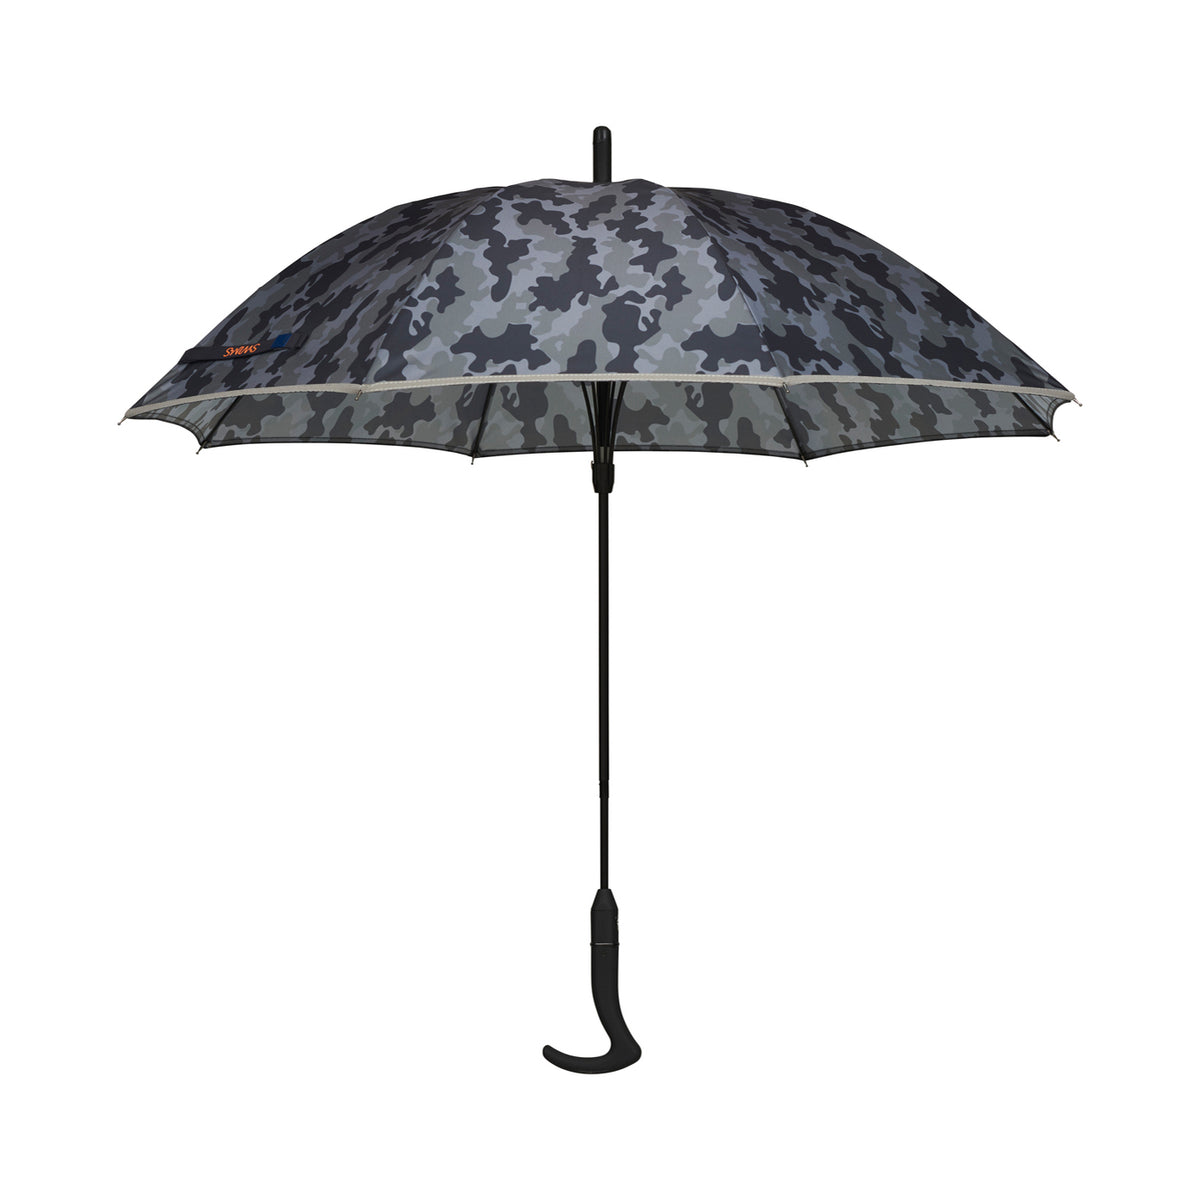 Umbrella Long - background::white,variant::Night Camo/Black